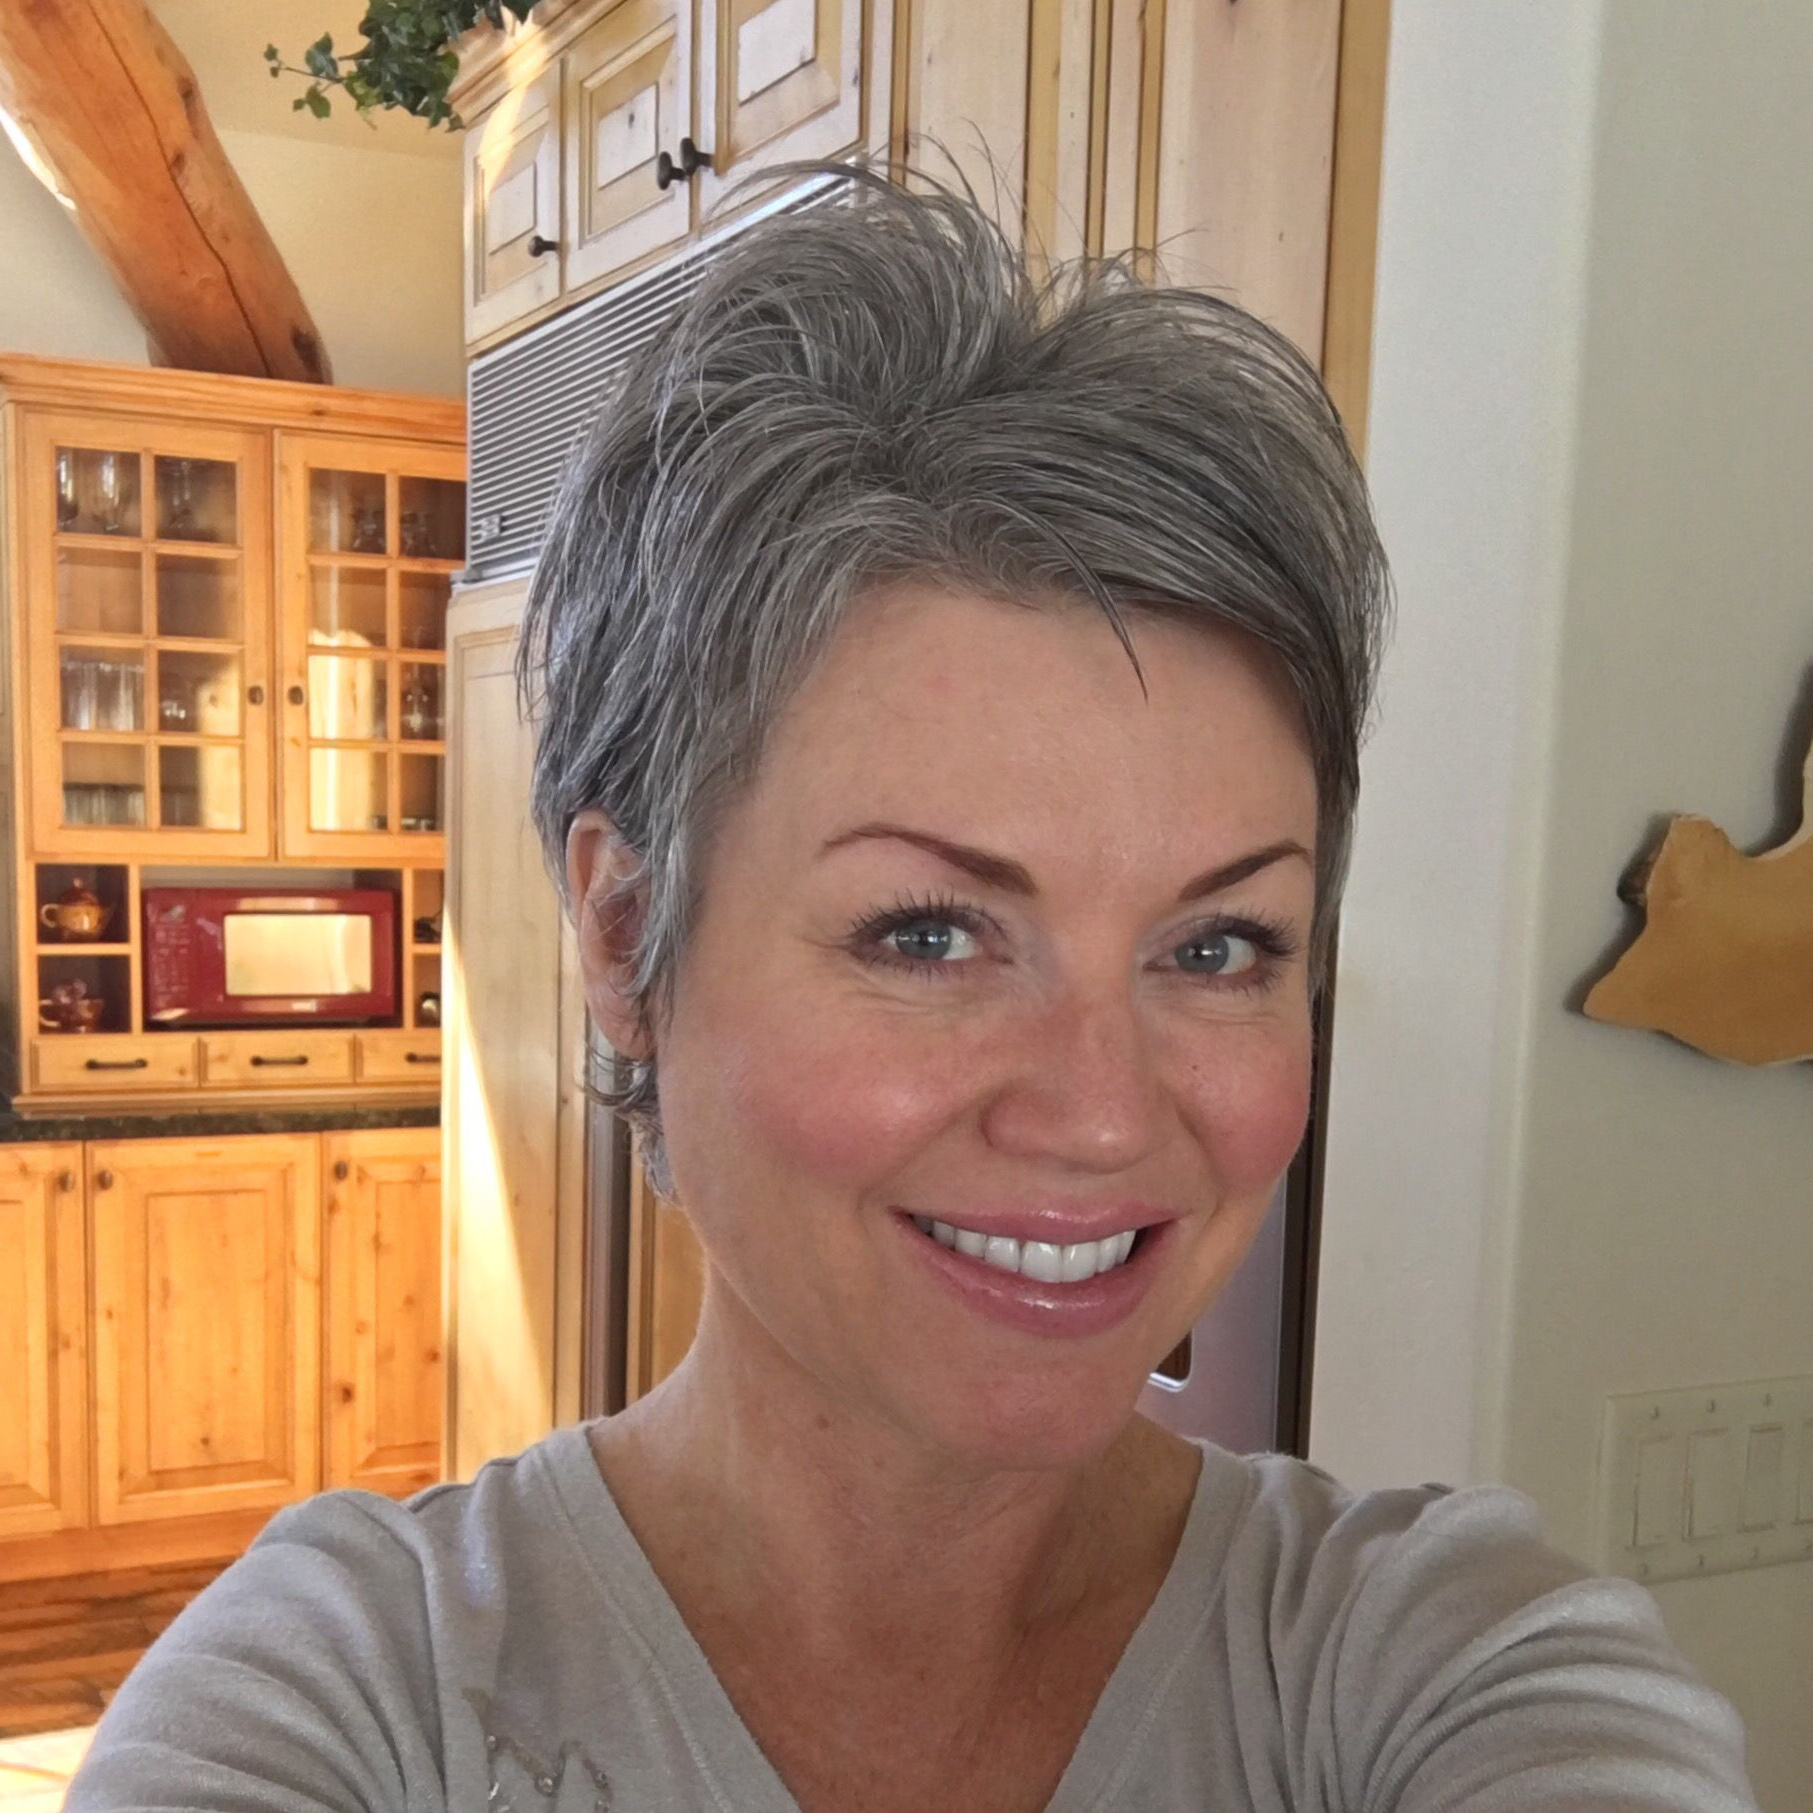 Gray Hair | Gray Hair | Pinterest | Gray Hair And Hair Style Within Short Haircuts With Gray Hair (Gallery 15 of 25)